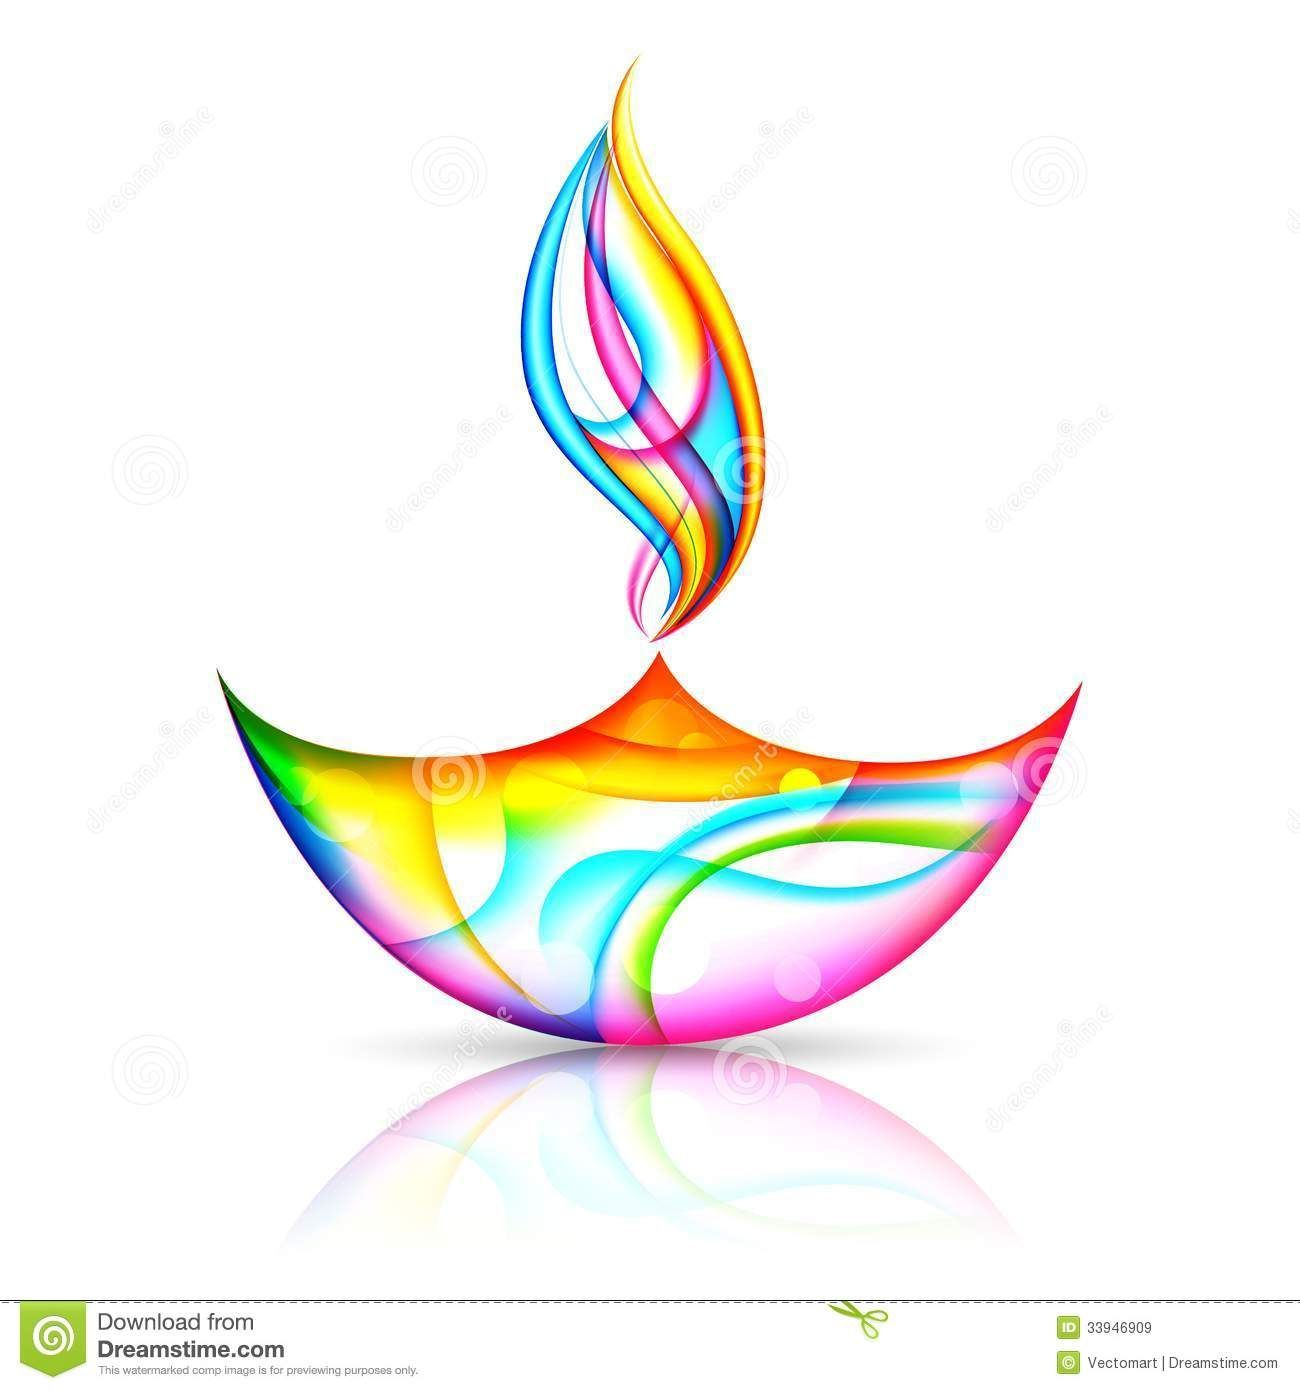 Diwali lamp clipart images vector free library Diwali lamp clipart 1 » Clipart Portal vector free library